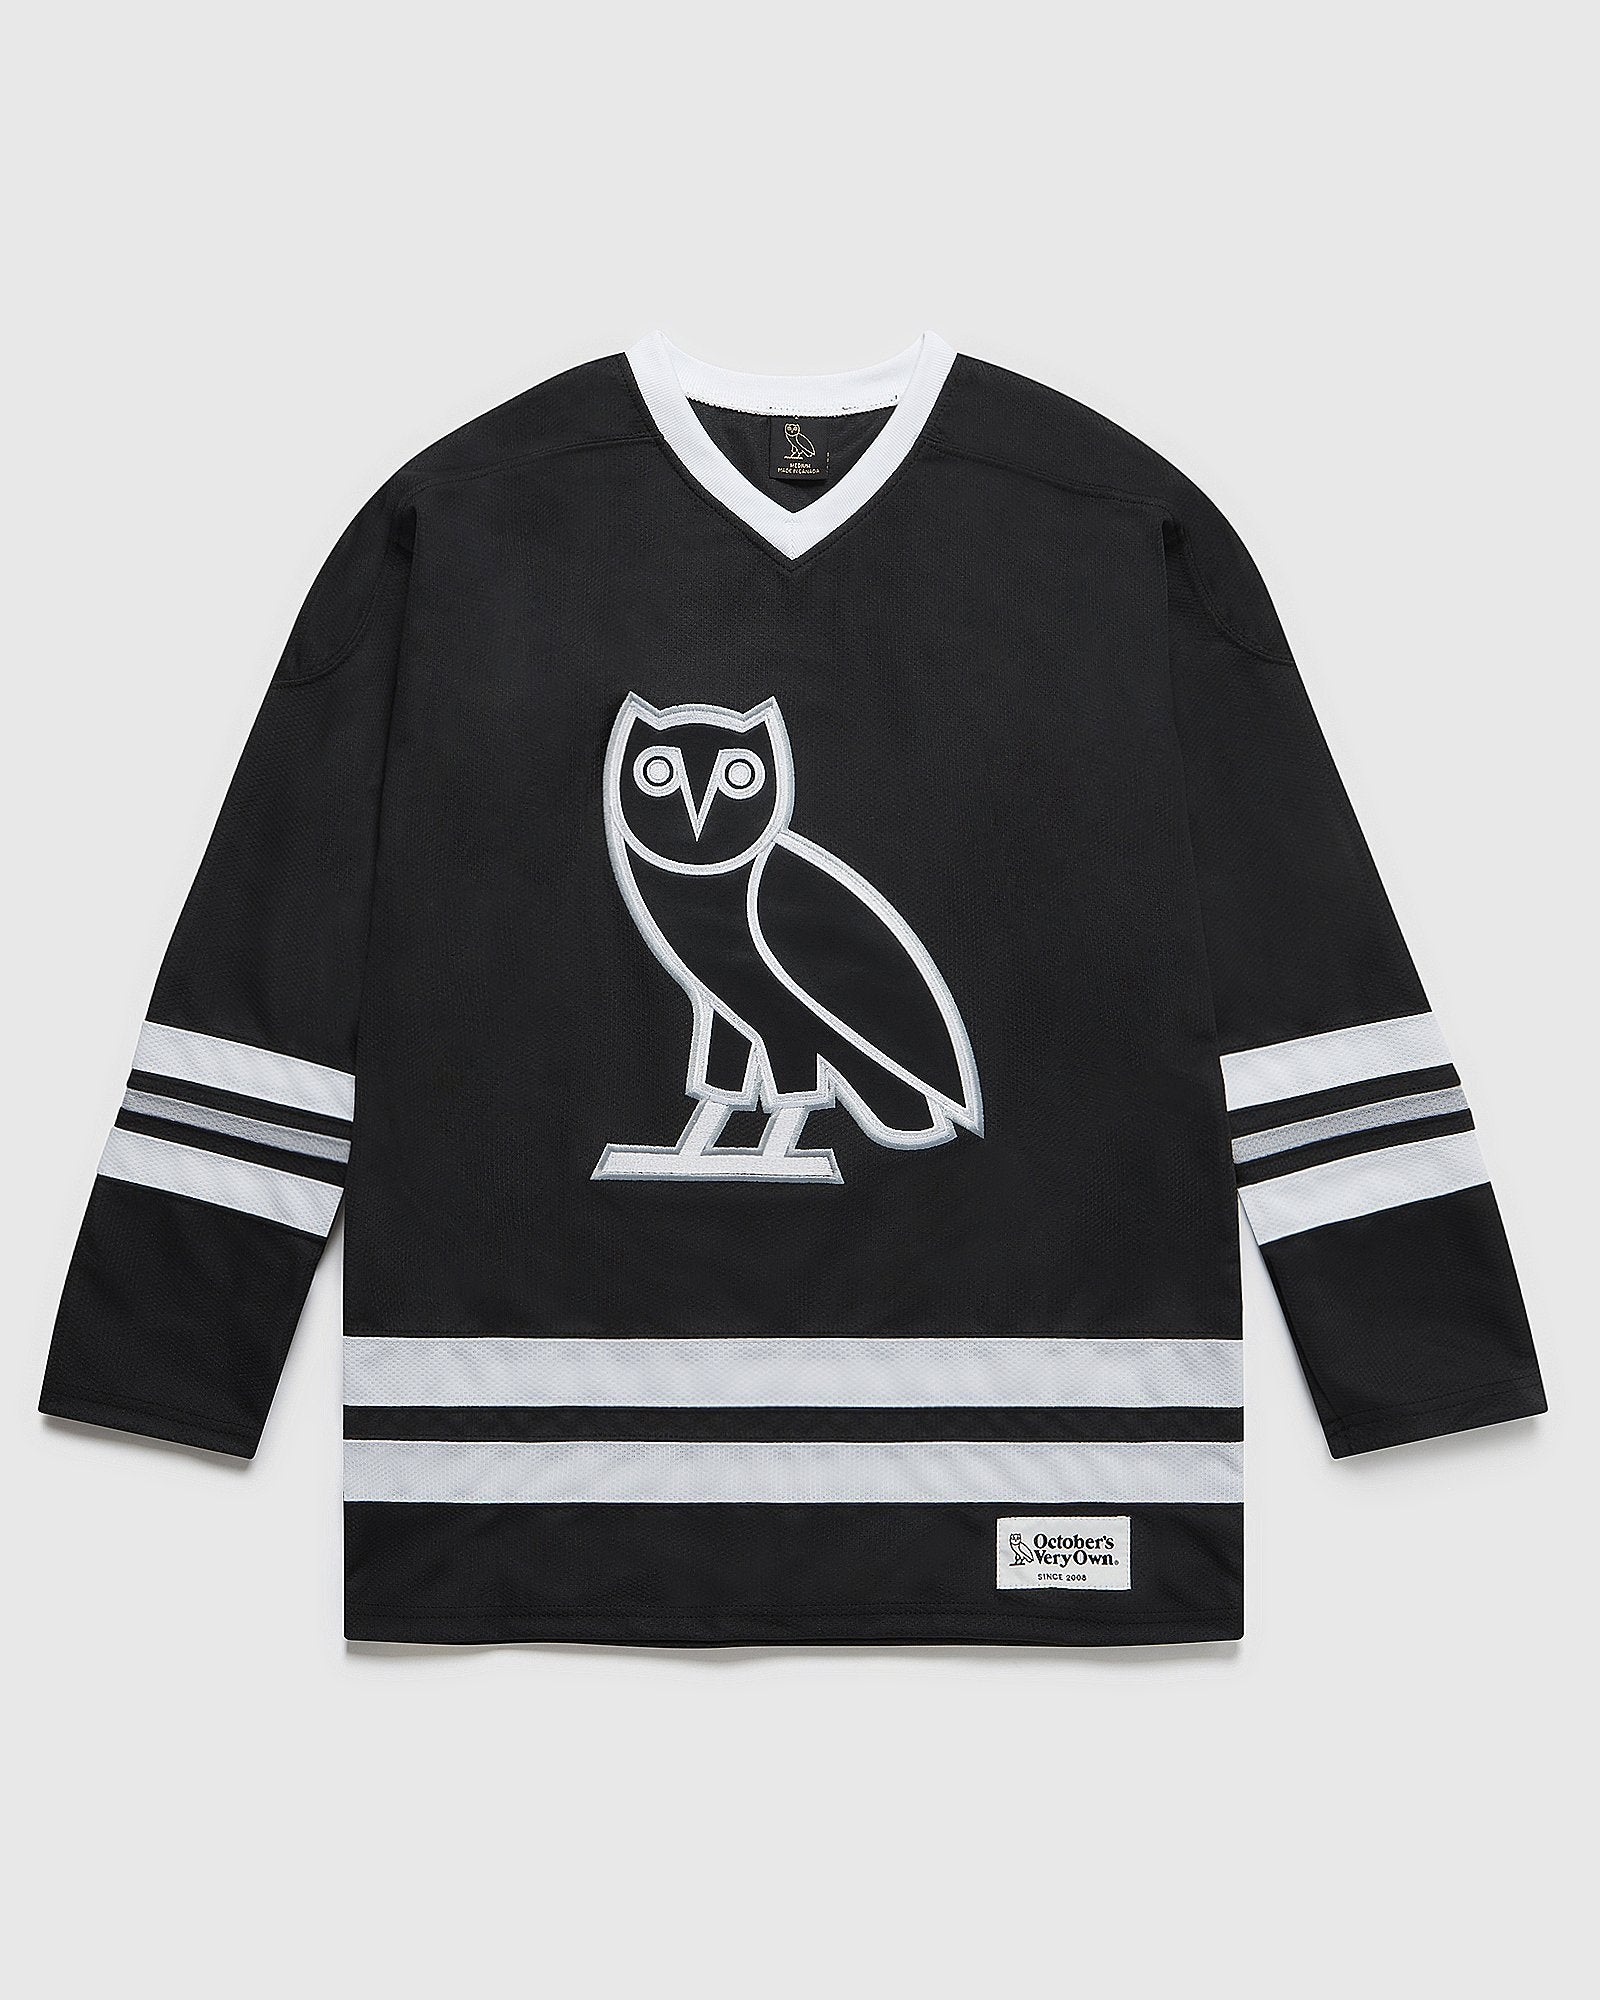 OVO HOCKEY JERSEY - BLACK IMAGE #1